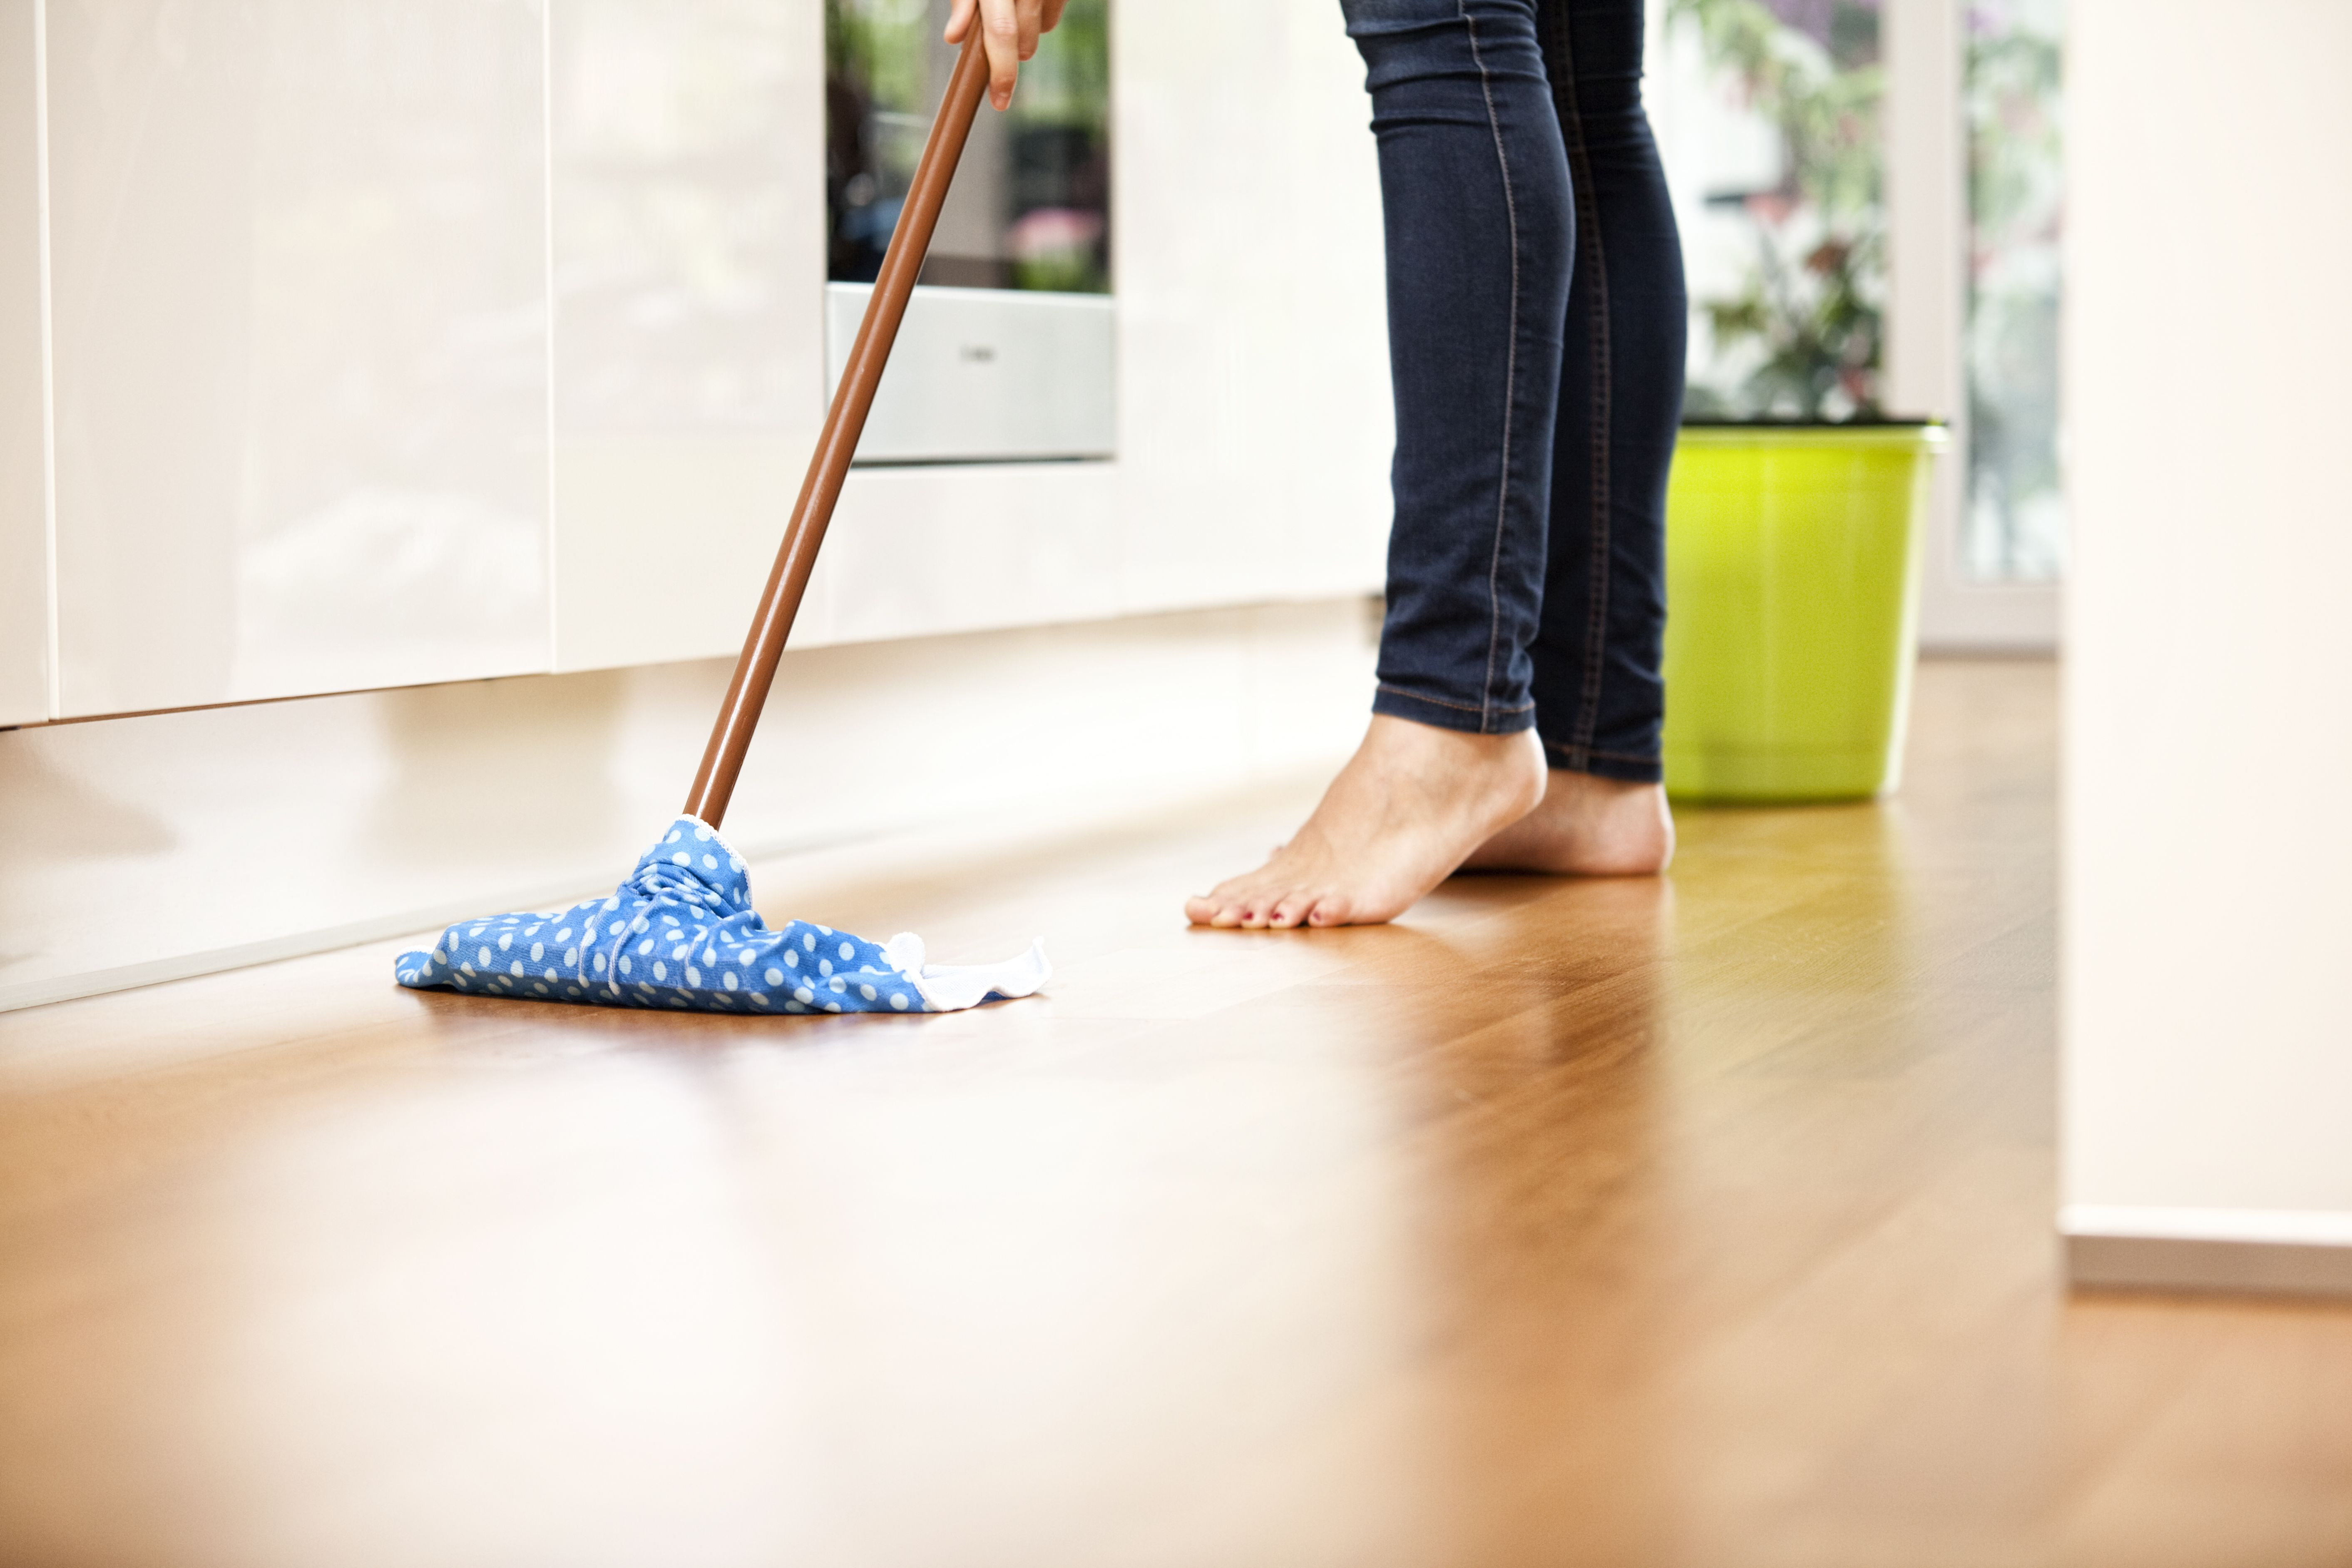 hardwood floor mop kit of the right cleaners for your solid hardwood flooring for woman wiping the floor 588494585 585049b43df78c491ebc200a